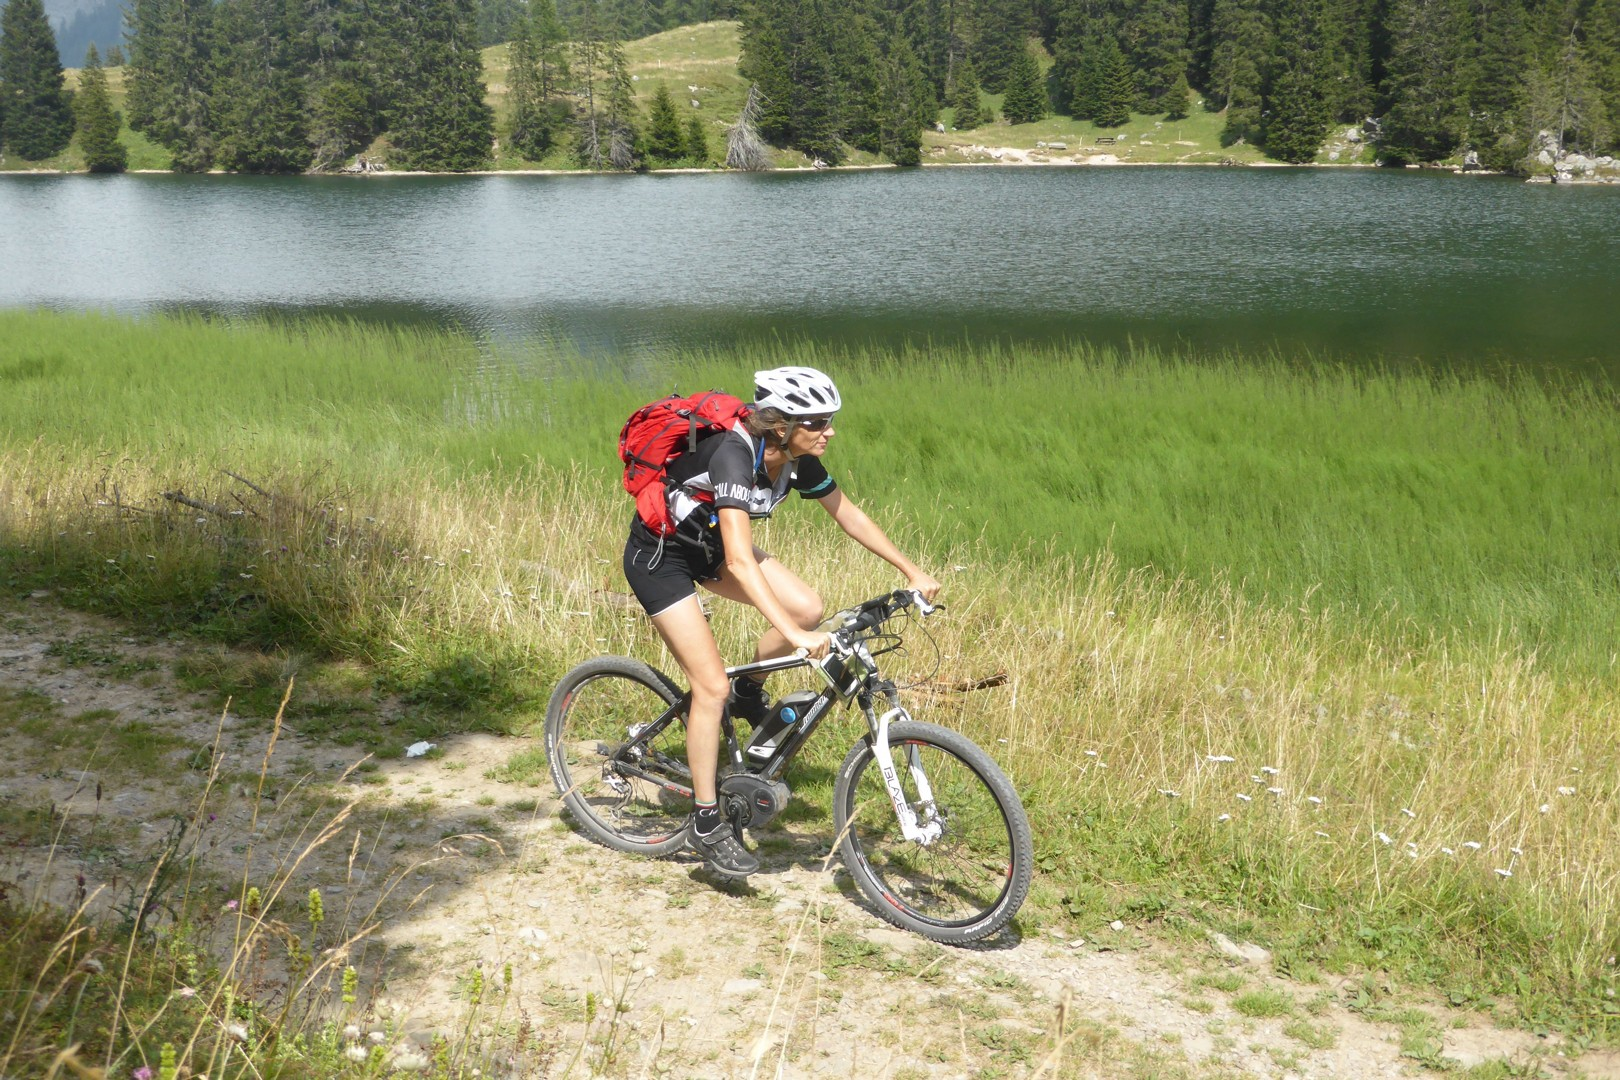 Dolomiti MTB - 1320.jpg - Italy - Dolomites of Brenta - Guided Mountain Bike Holiday - Italia Mountain Biking